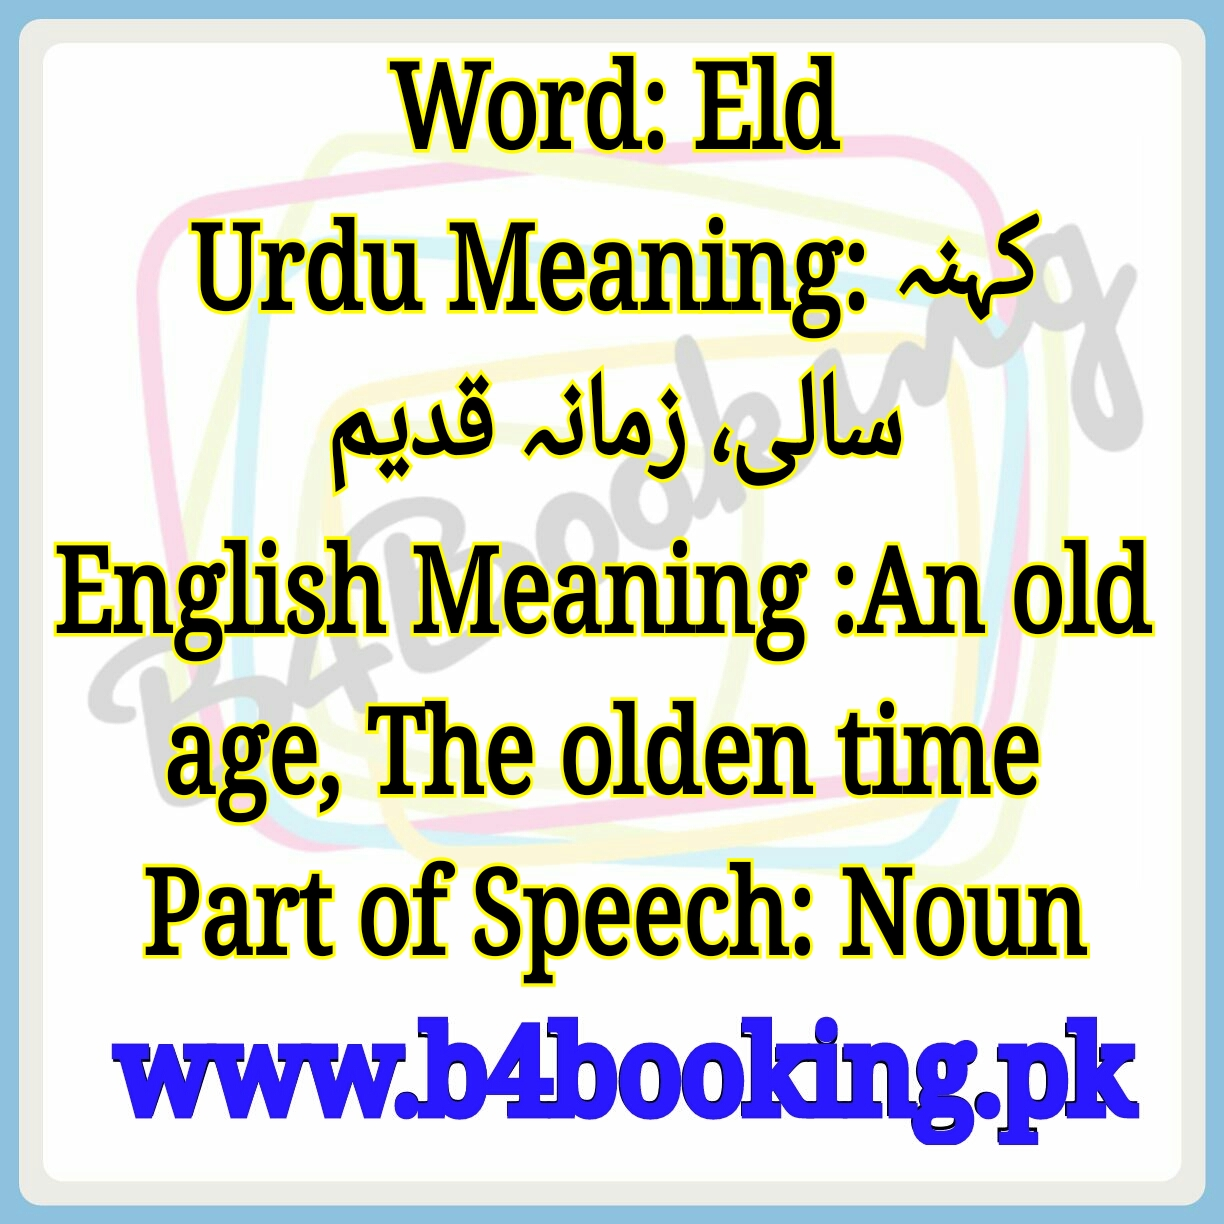 Old-aged meaning in urdu